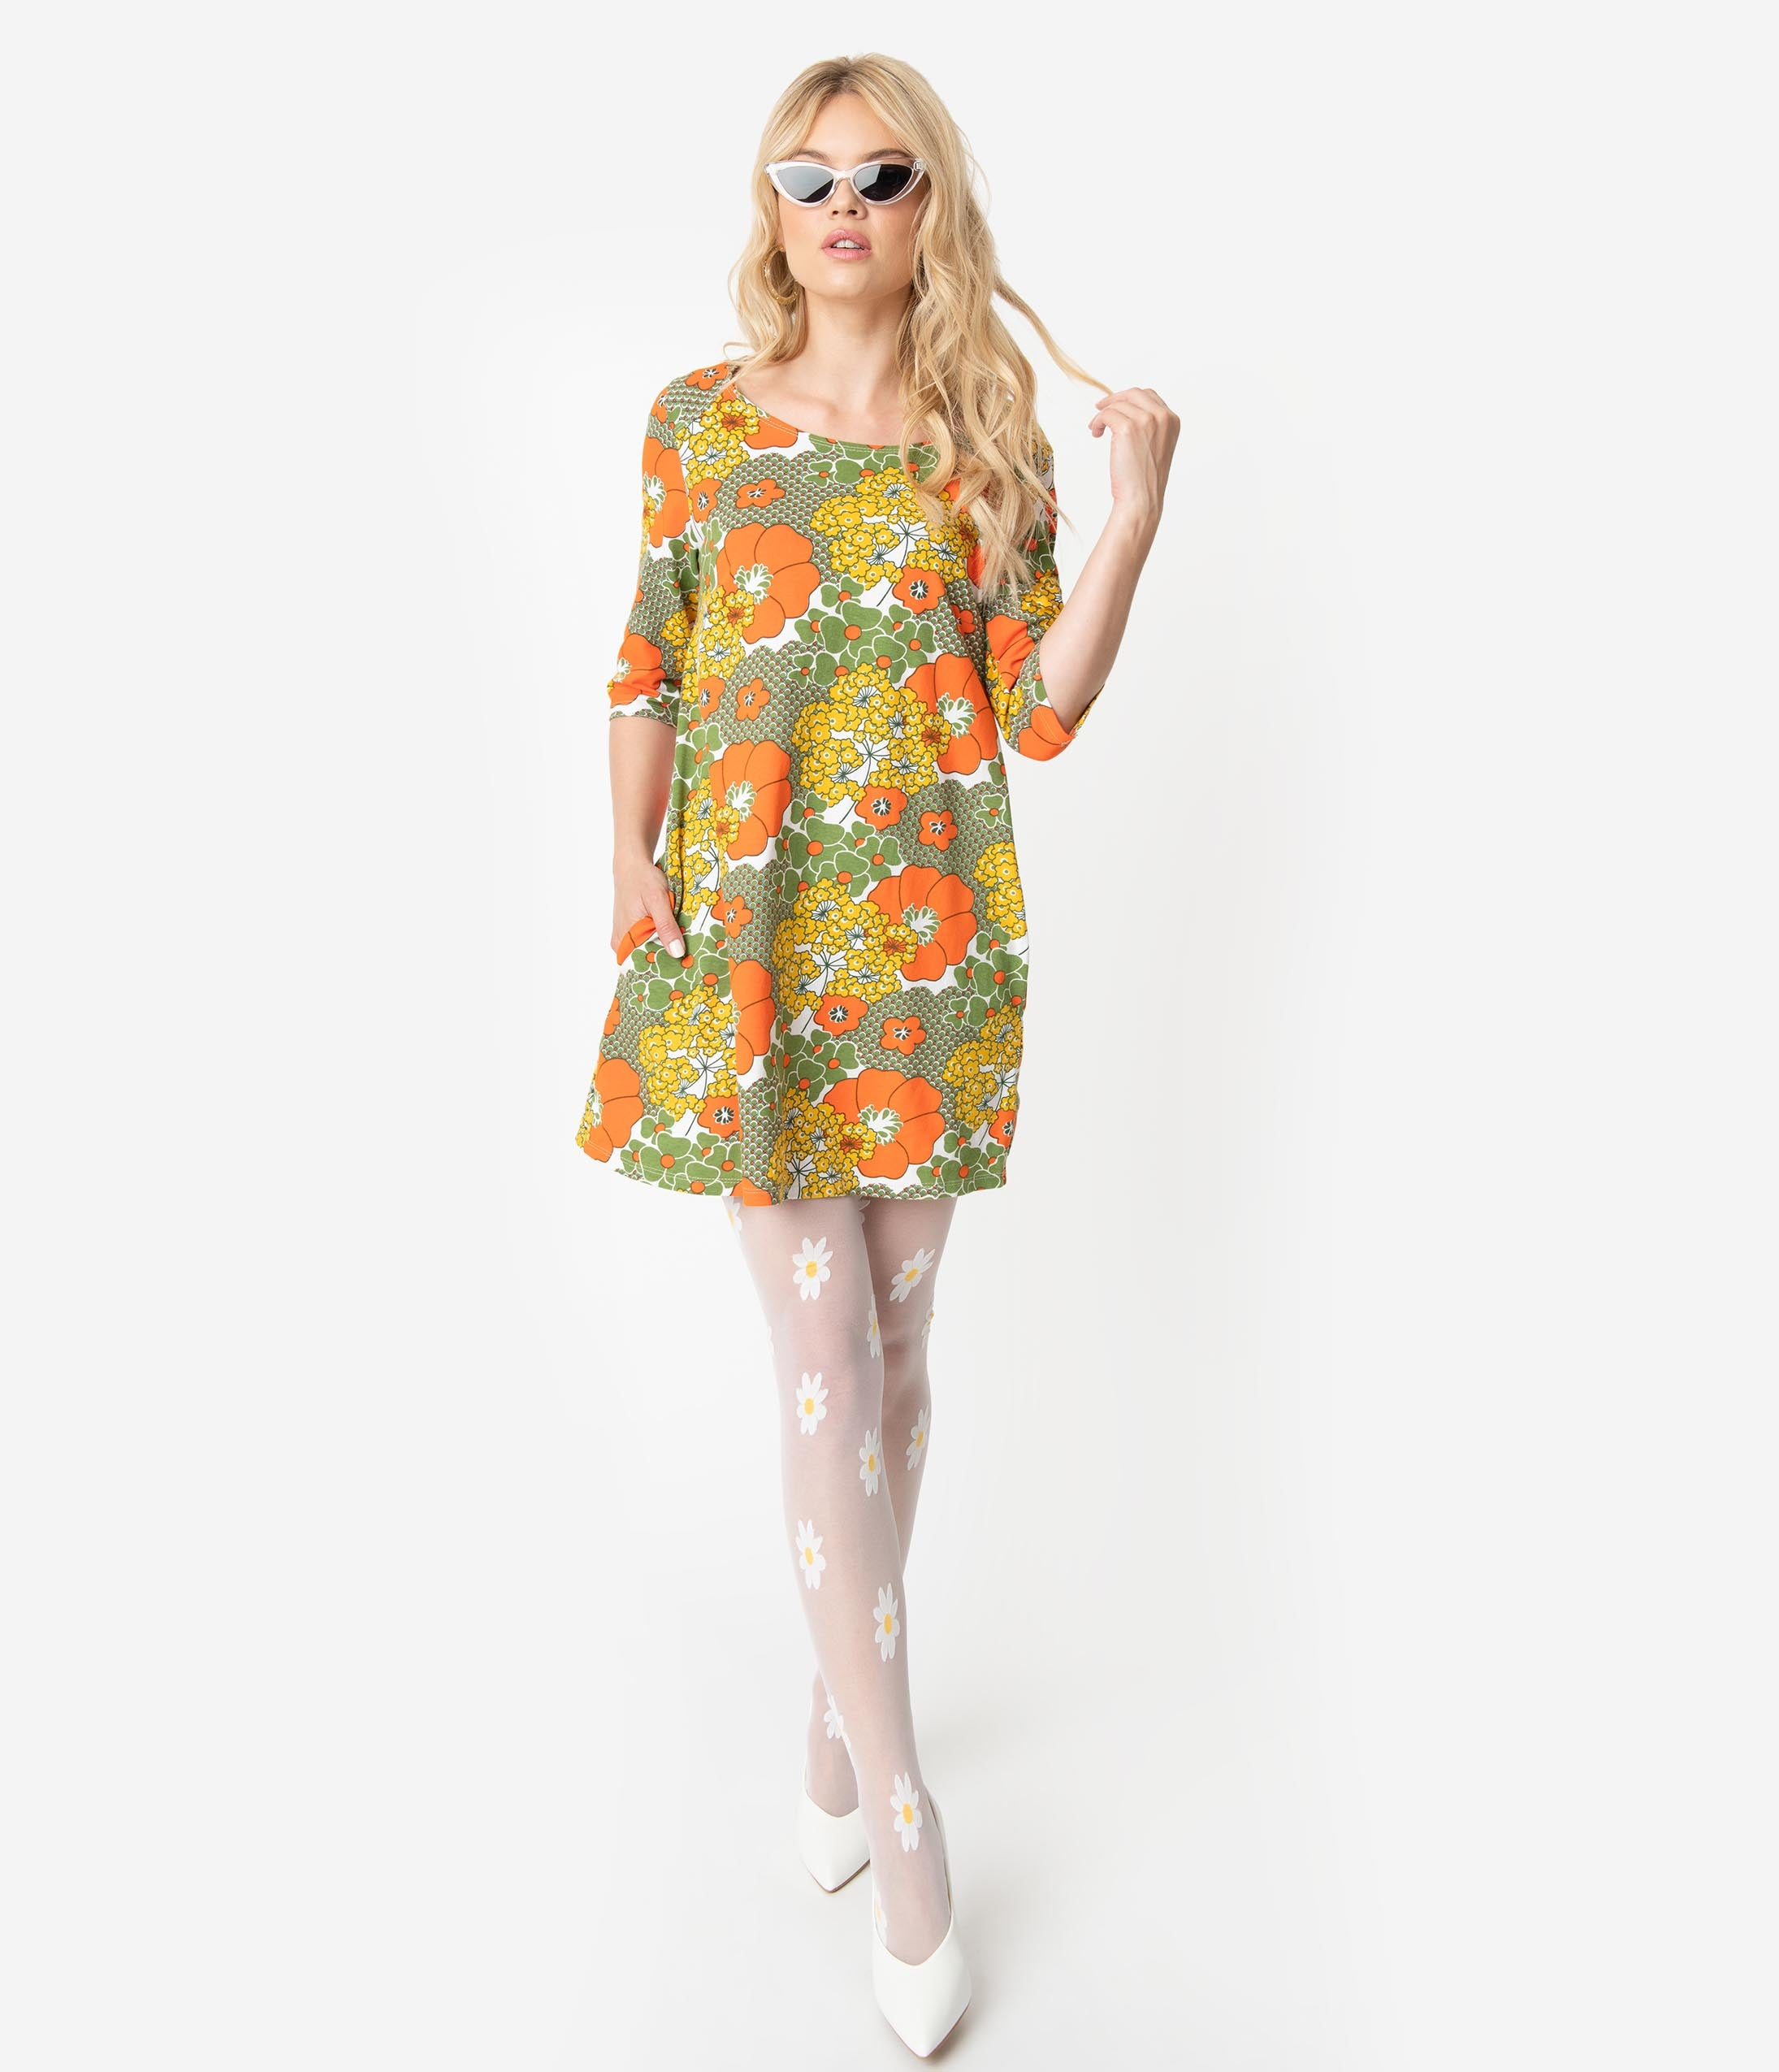 60s 70s Plus Size Dresses, Clothing, Costumes 1960S Style Olive Green  Orange Retro Floral Print Cotton Tunic Dress $58.00 AT vintagedancer.com